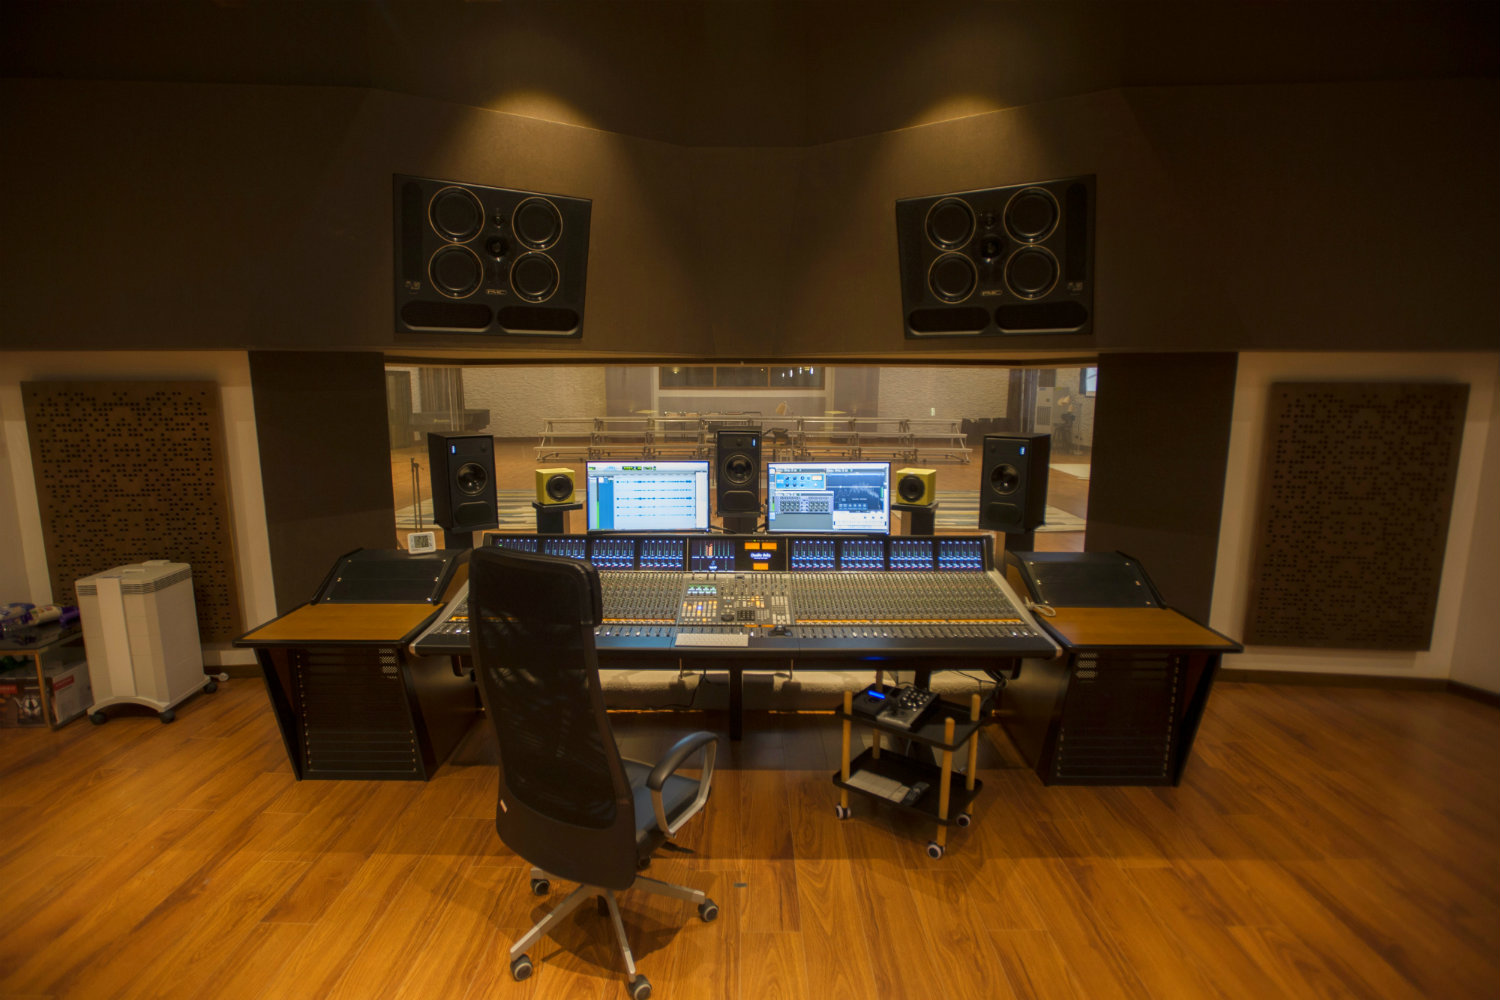 Zhejiang Conservatory of Music in Hangzhou, East China commissioned WSDG to create an important addition to this extraordinary institution, a 21st Century Music Production & Education Complex. Control Room Front View.